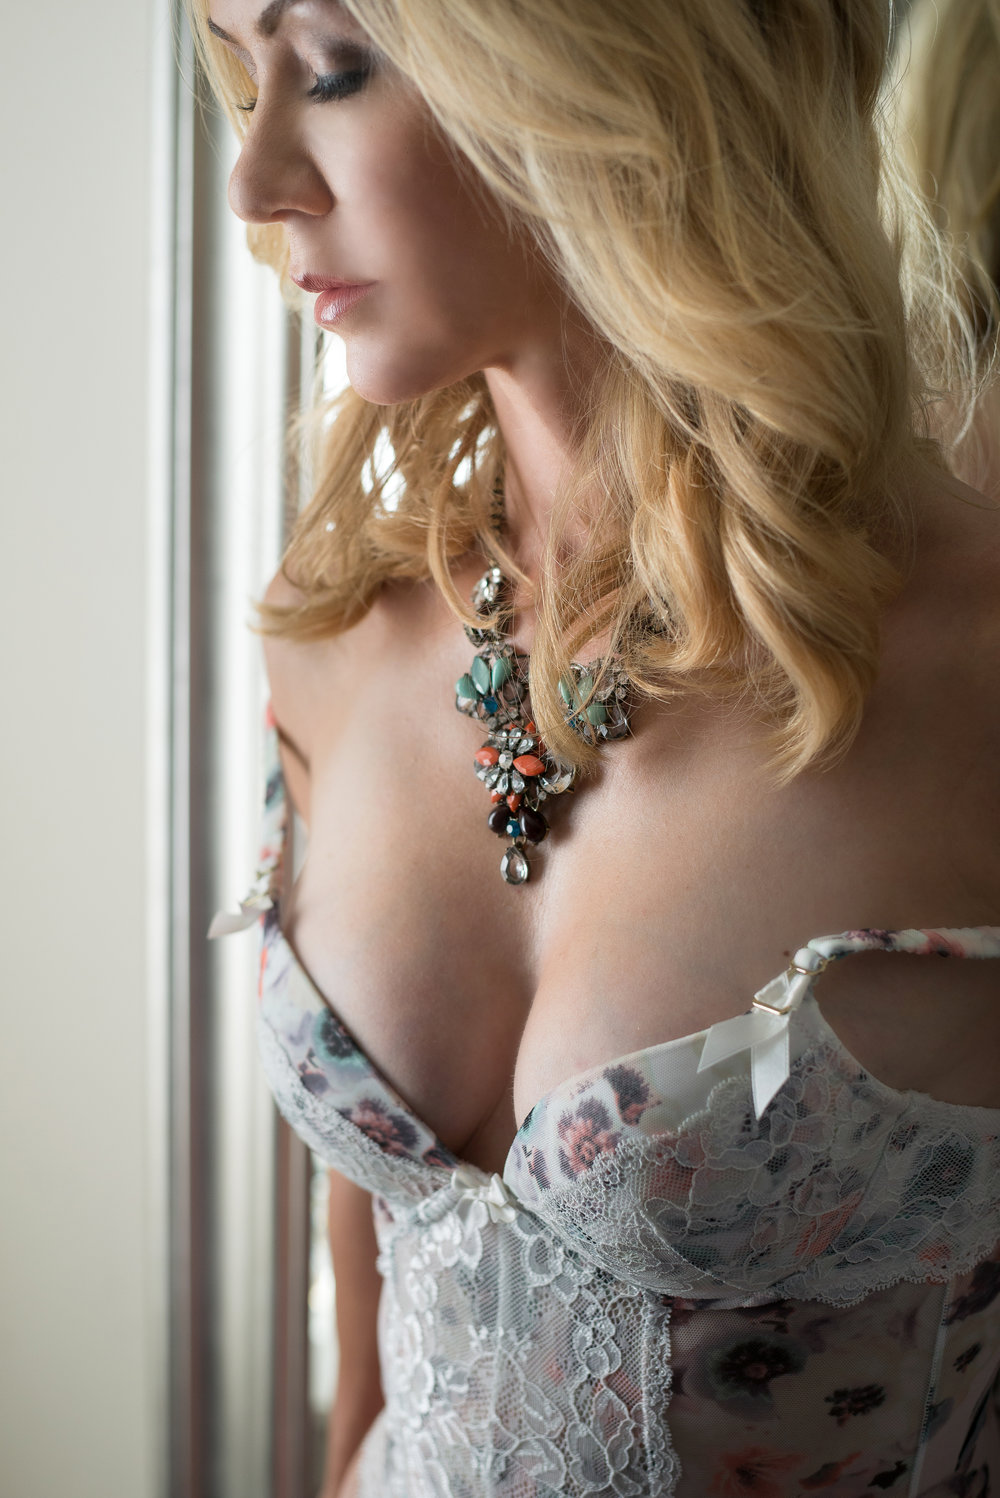 Blonde woman wearing floral lingerie in Denver boudoir studio